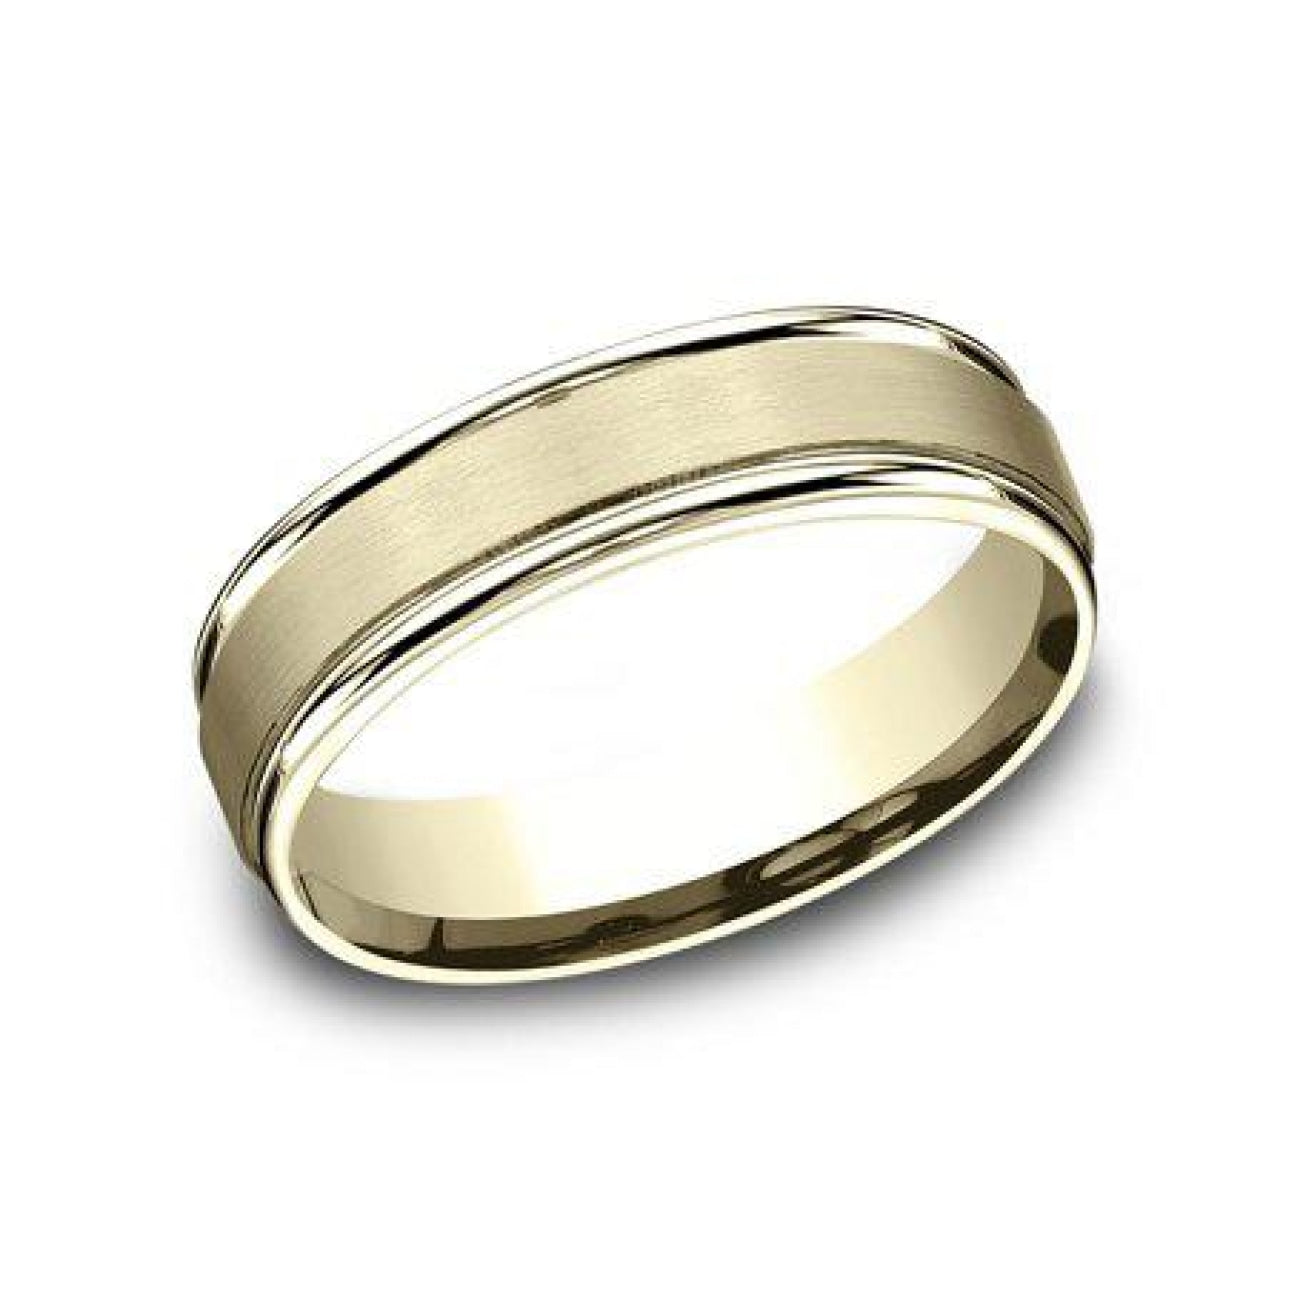 Benchmark Engagement - 6mm Satin Comfort Fit Wedding Band With Polished Edge | Manfredi Jewels